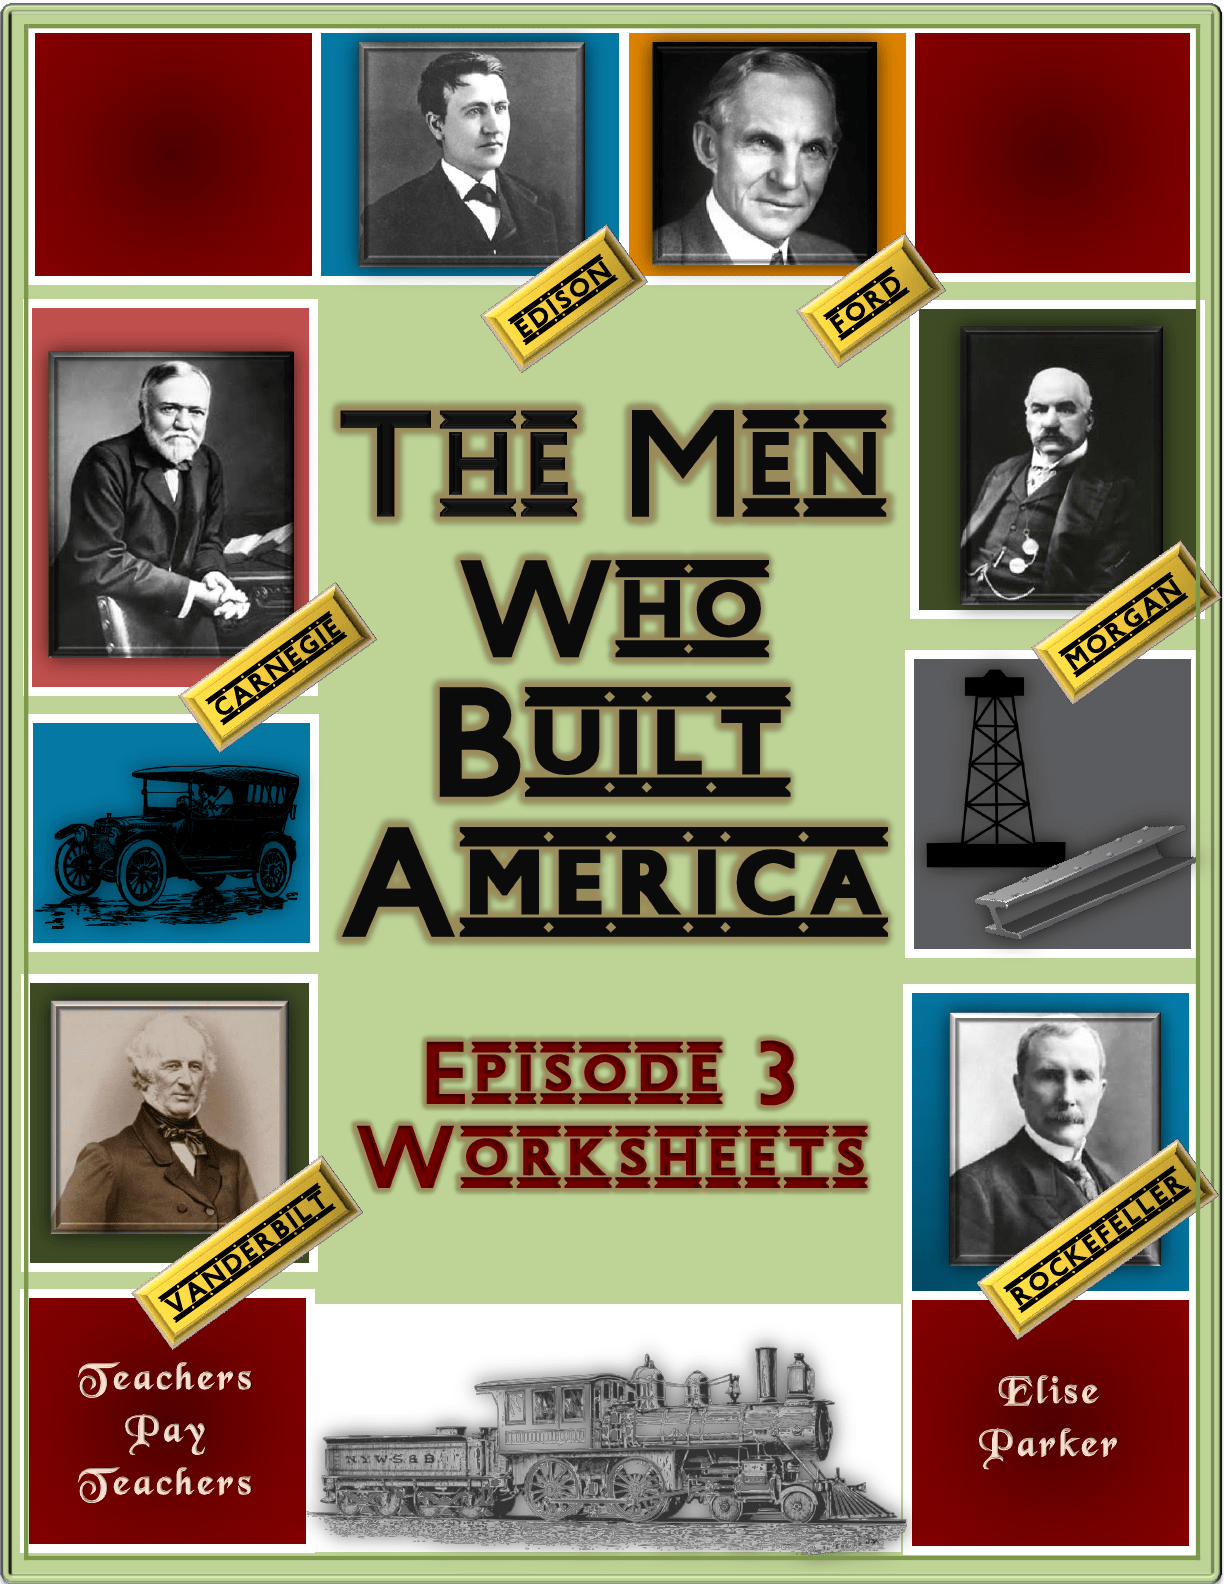 The Men Who Built America Episode 3 Worksheets